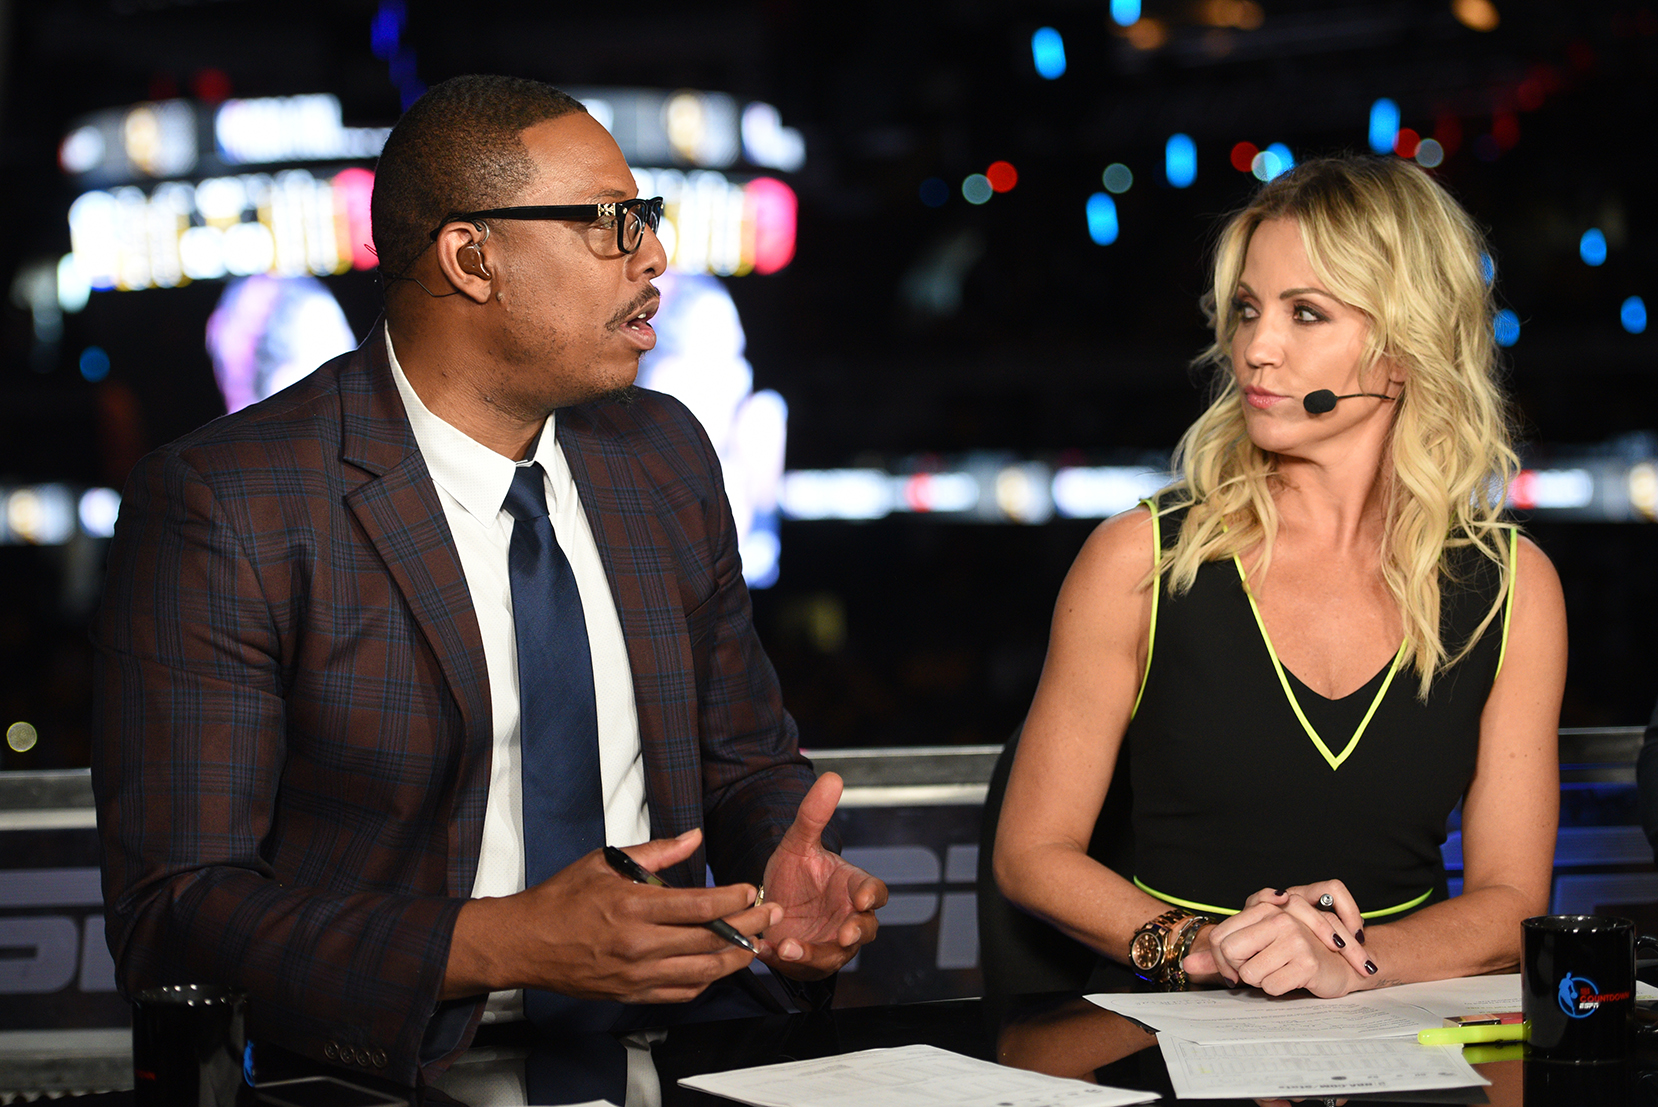 ESPN replacing Beadle on NBA with Nichols, Taylor - Sports Media Watch